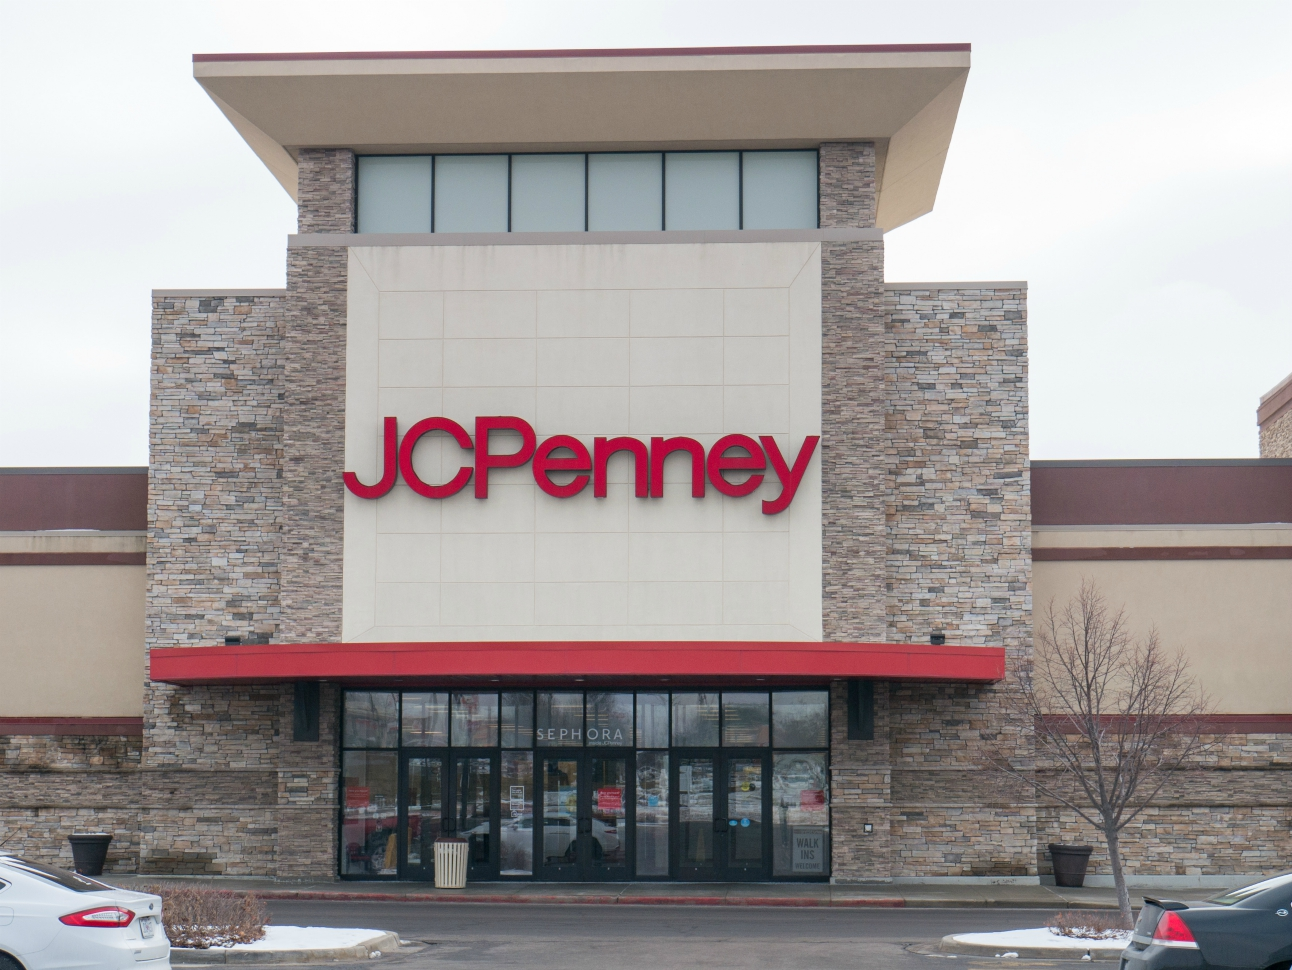 For the three-month period ended May 2, bankrupt retail chain J.C. Penney's net sales fell 55.6 percent to $1.08 billion from $2.44 billion.